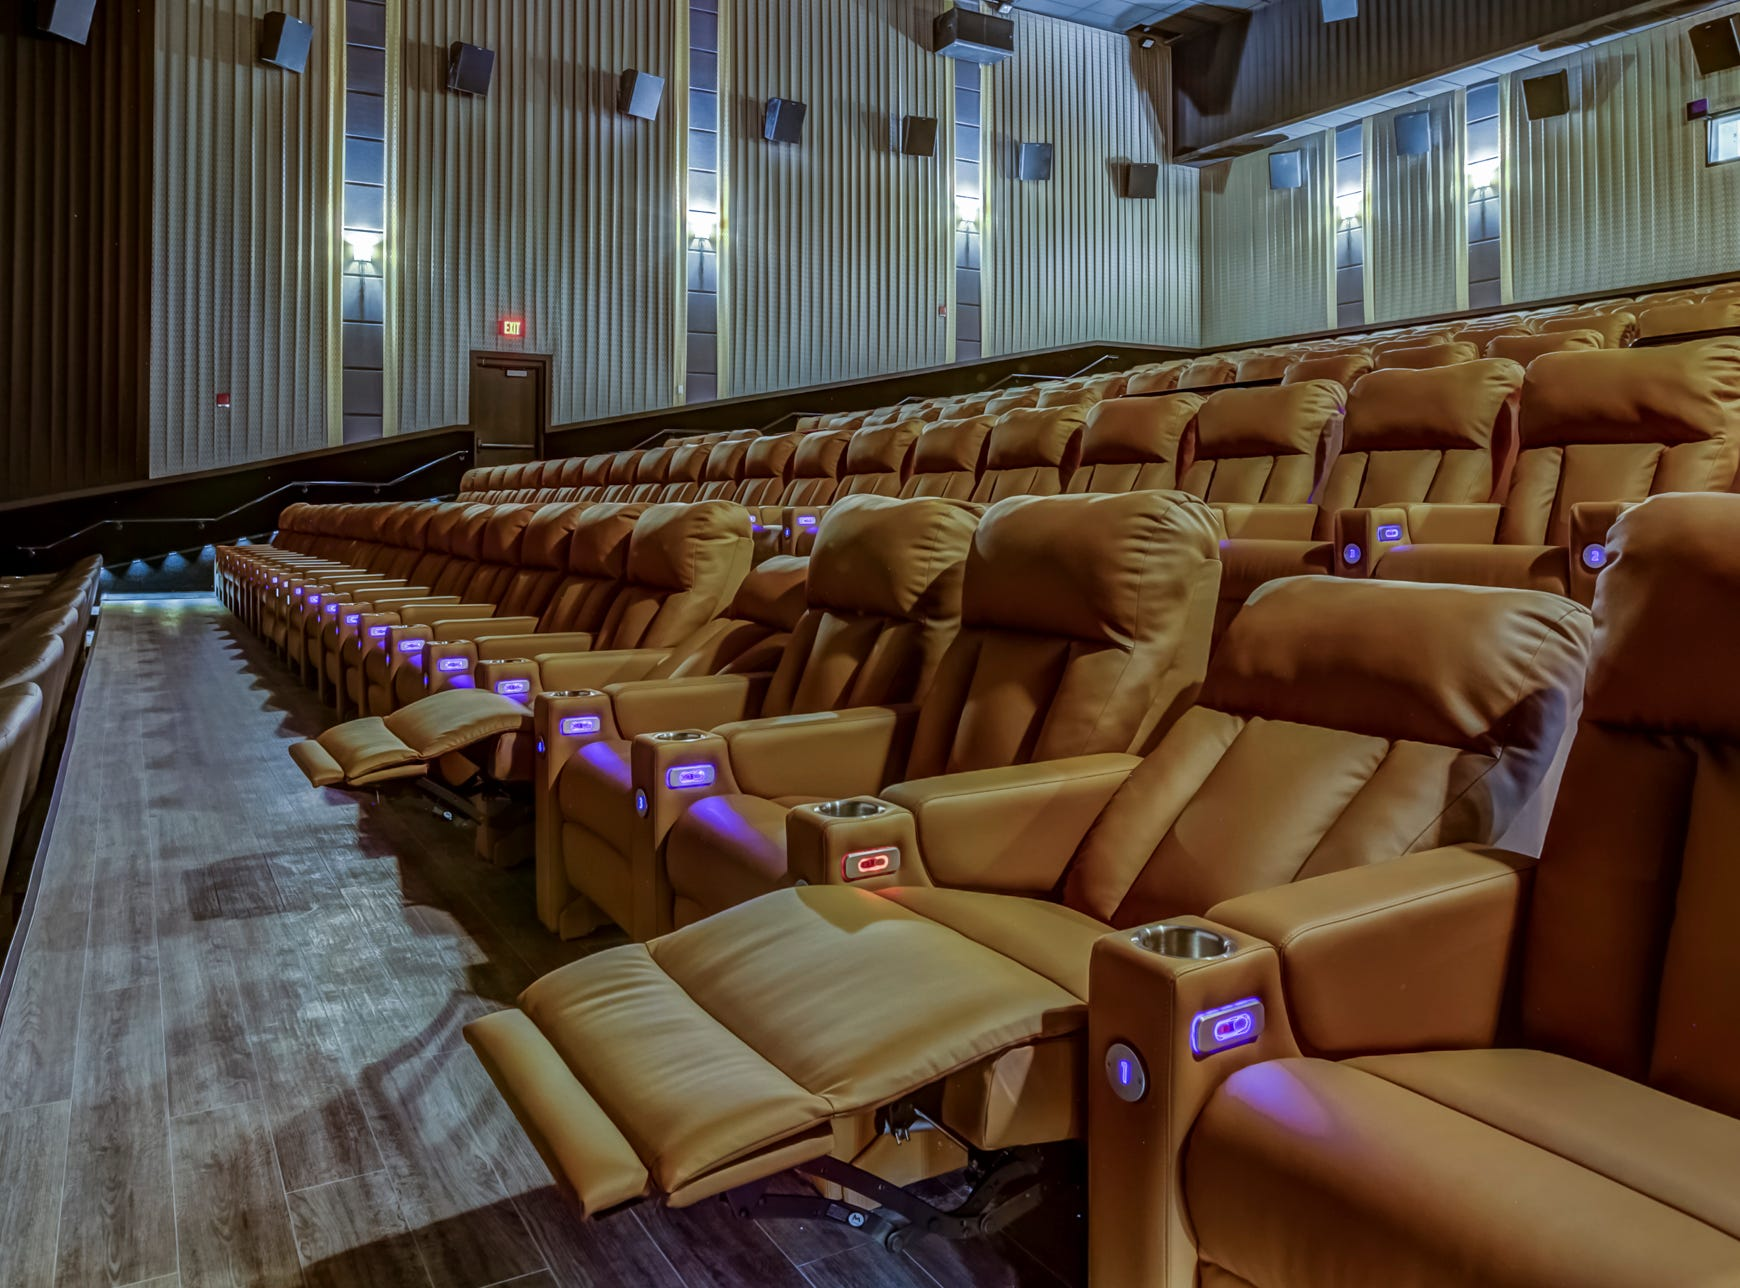 Reclining seats in Emagine Entertainment's new movie theater Emagine Hartland, shown Friday, Dec. 14, 2018, are also heated.